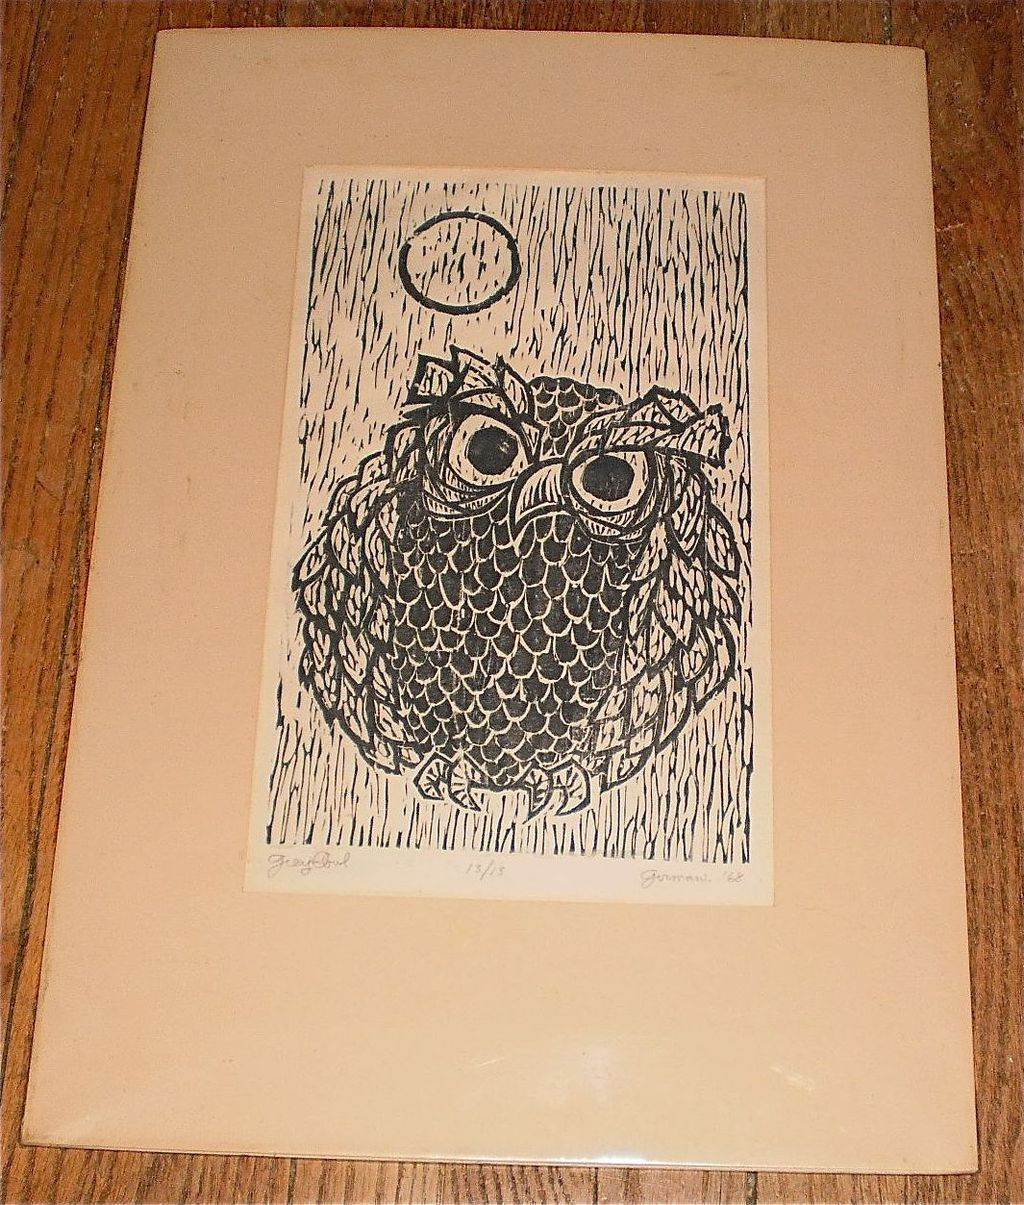 &quot;Grey Owl&quot; Woodcut-13/13-1968-William Gorman